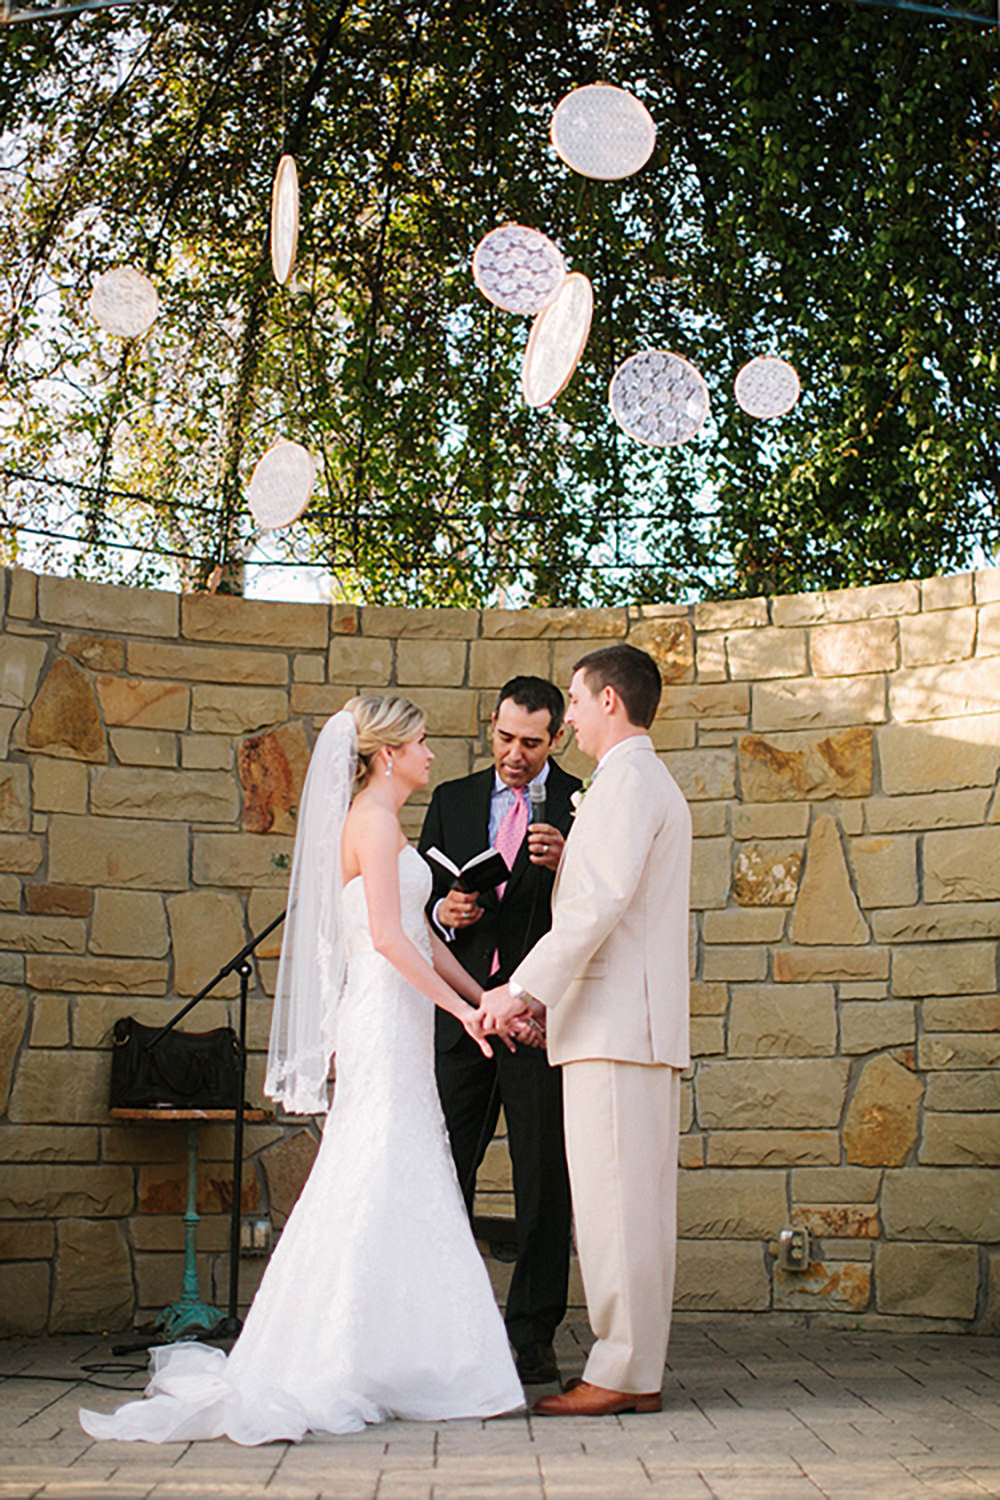 austin-wedding-photographer-25.jpg